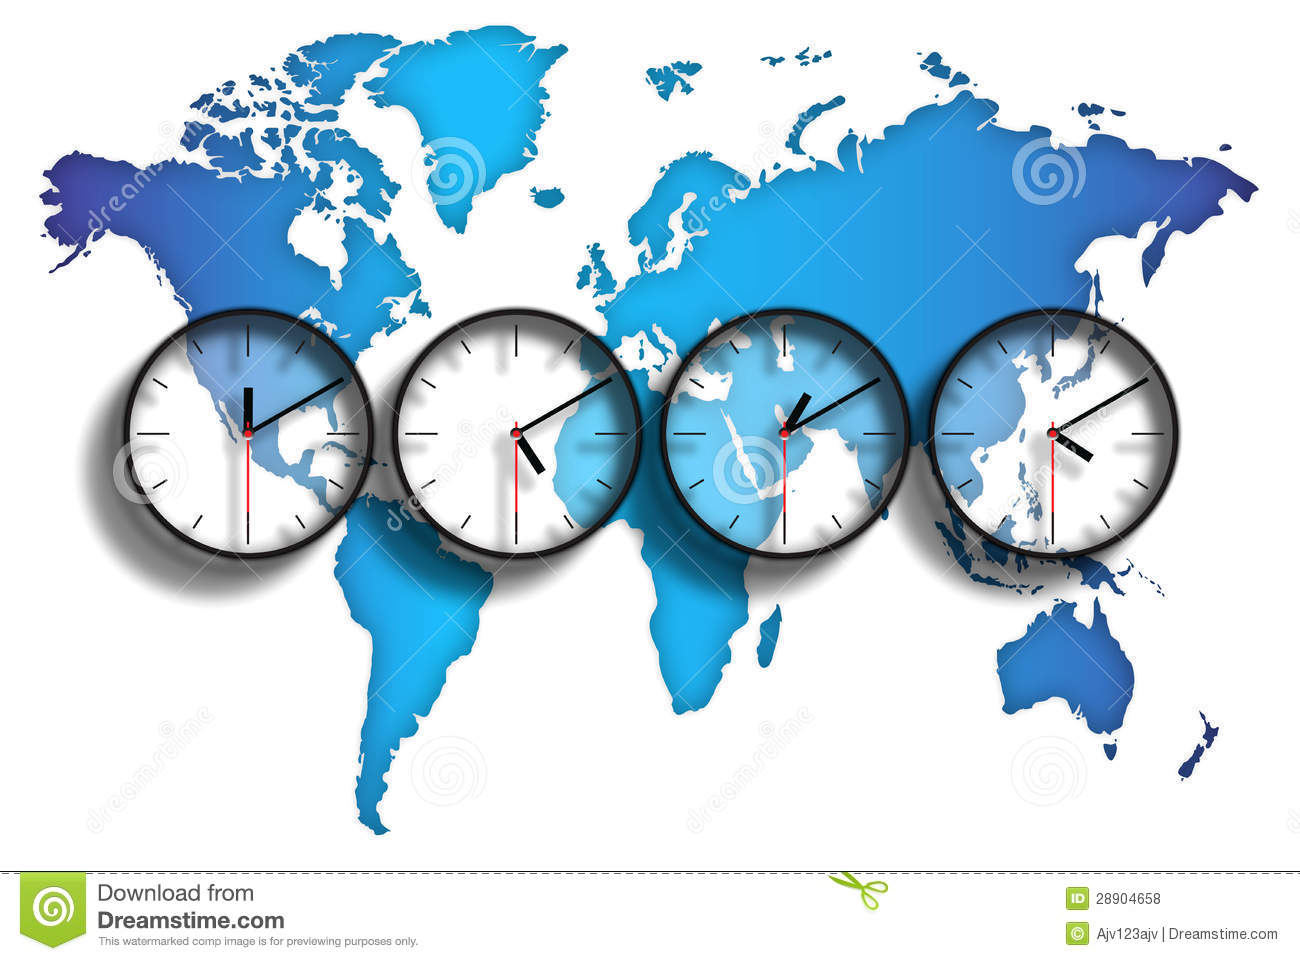 World map time zones stock illustration illustration of kingdoms world map time zones gumiabroncs